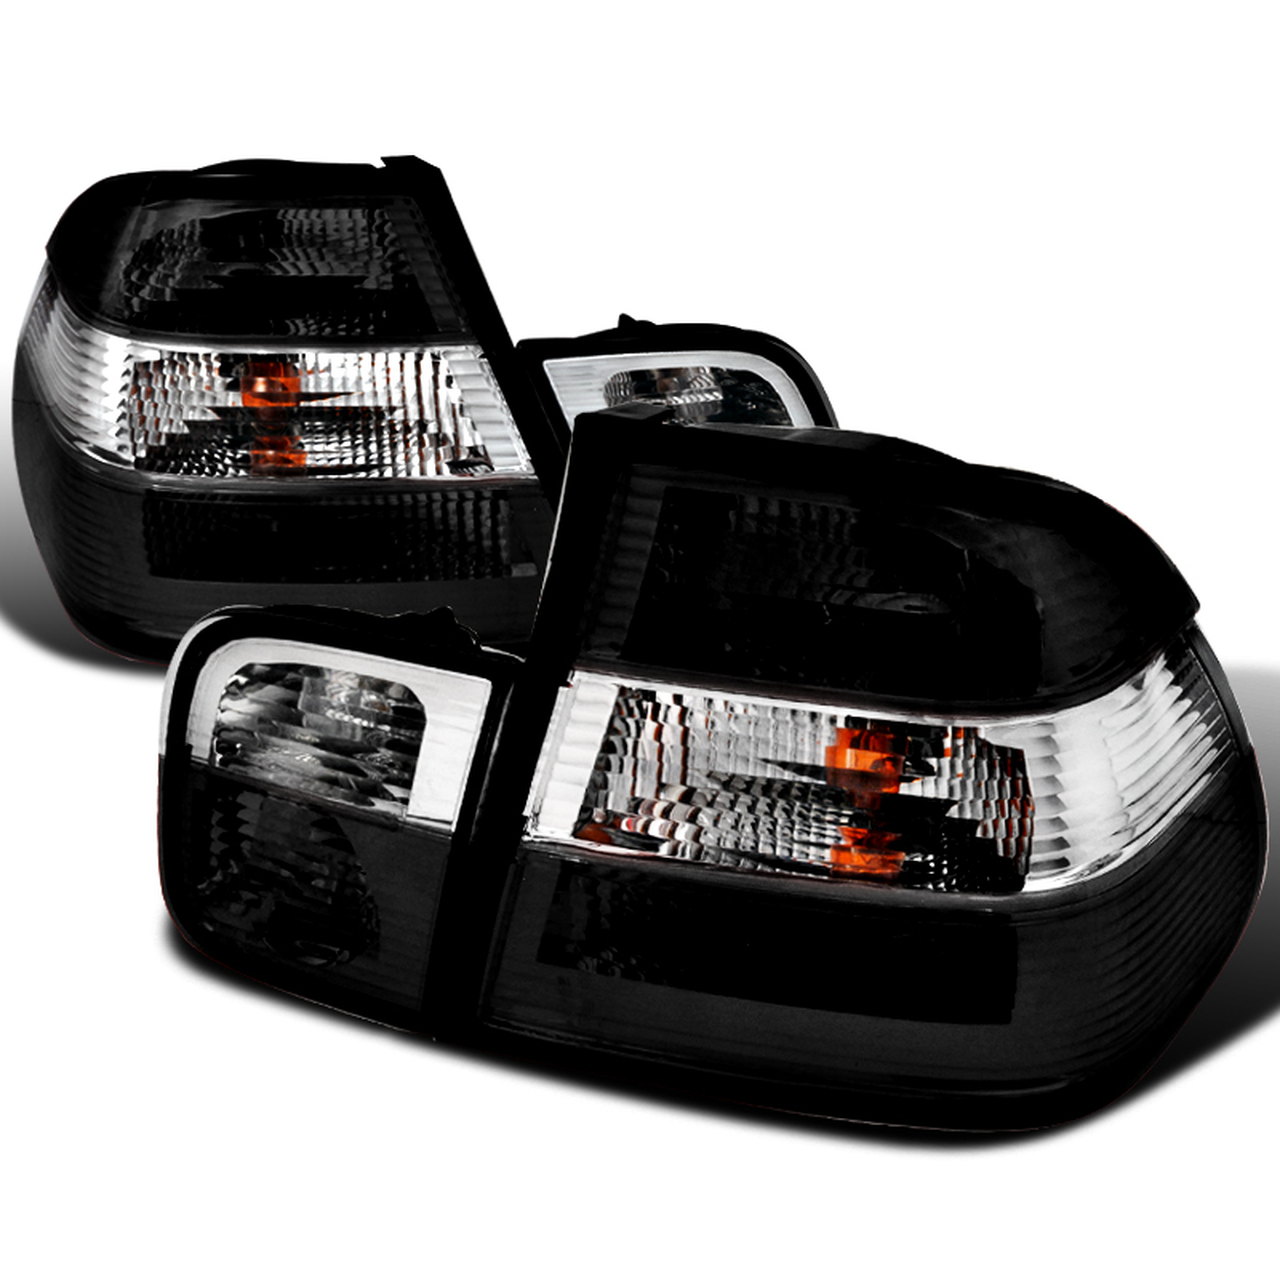 Spec-D Tuning Smoke/Clear Altezza Tail Lights - Spec-D Tuning LT-E464GPW-APC